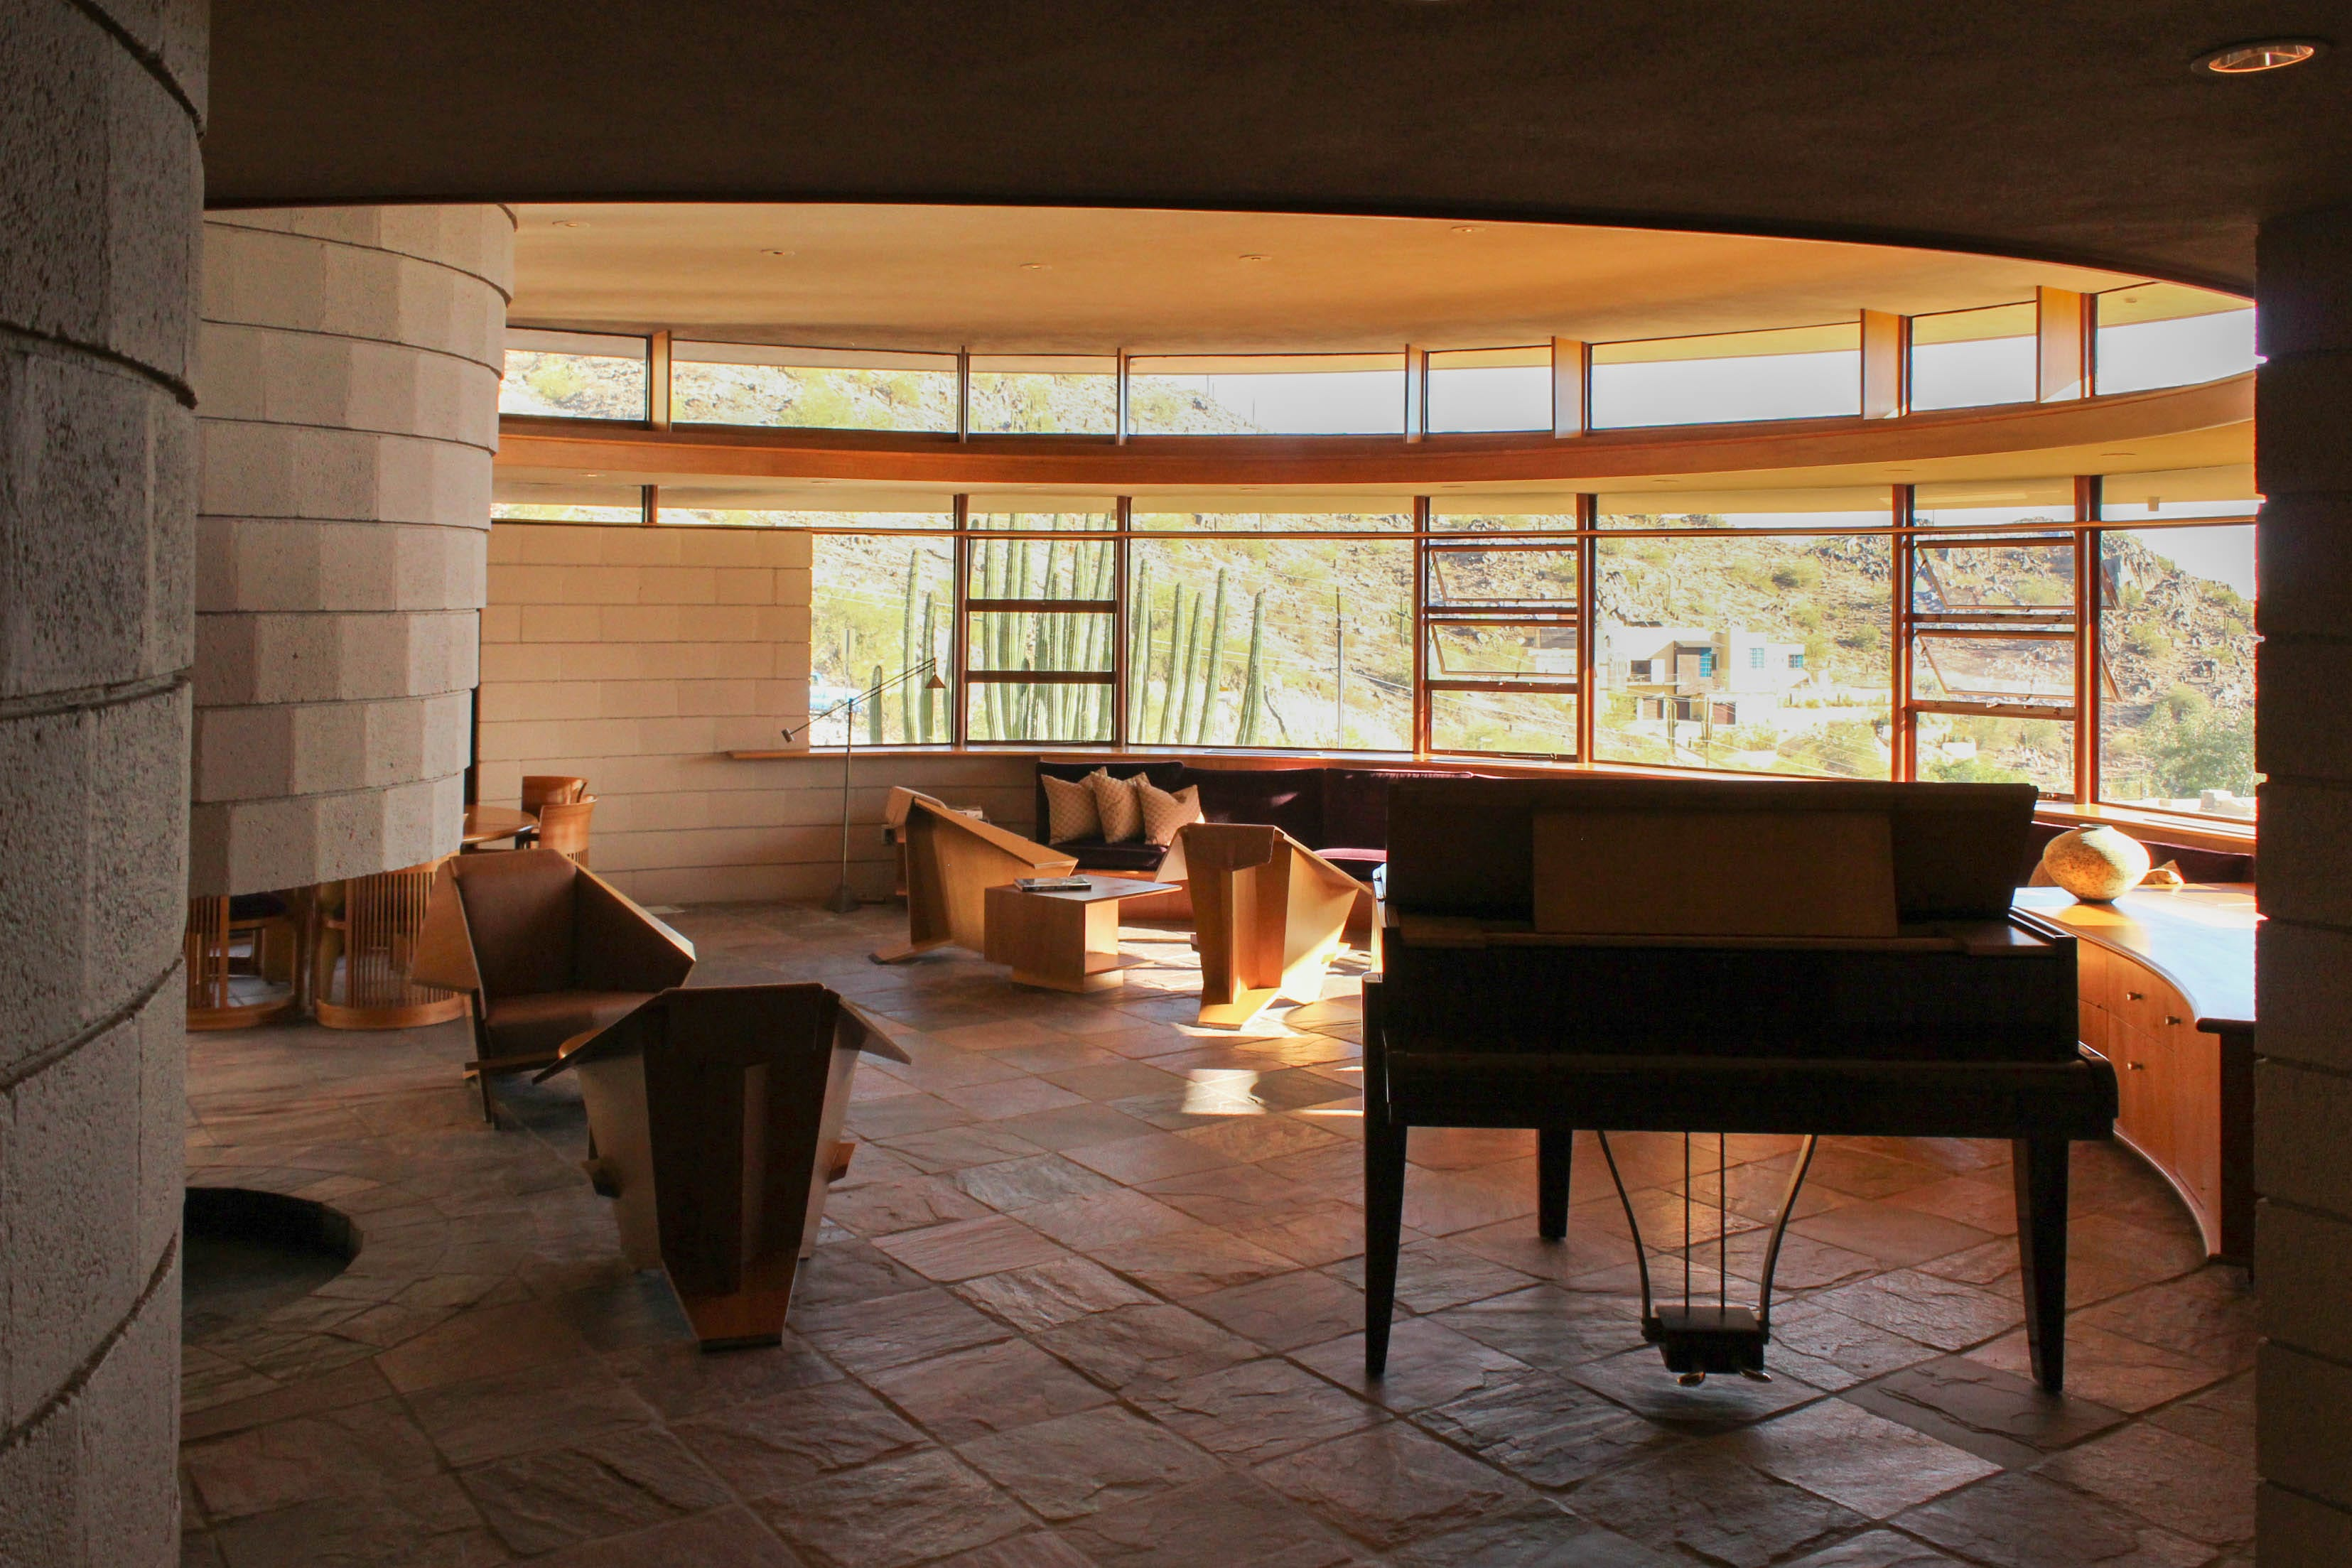 The last home designed by Frank Lloyd Wright sells for $1.6M in Phoenix